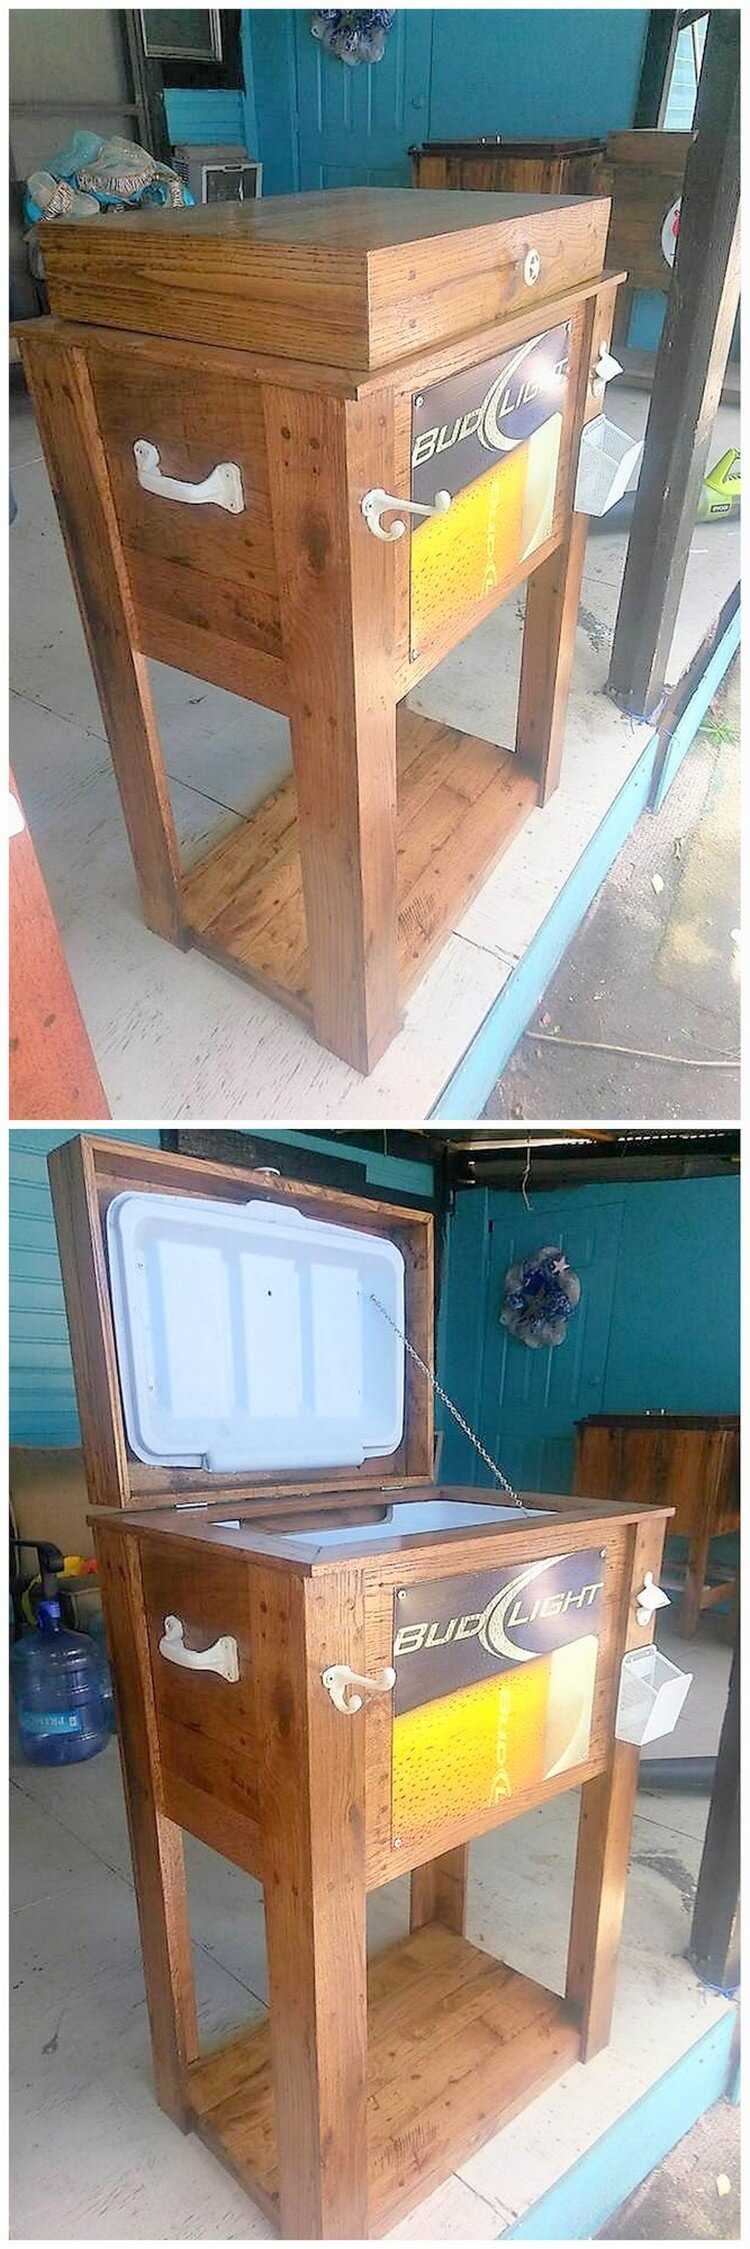 Wooden Pallet Cooler Idea